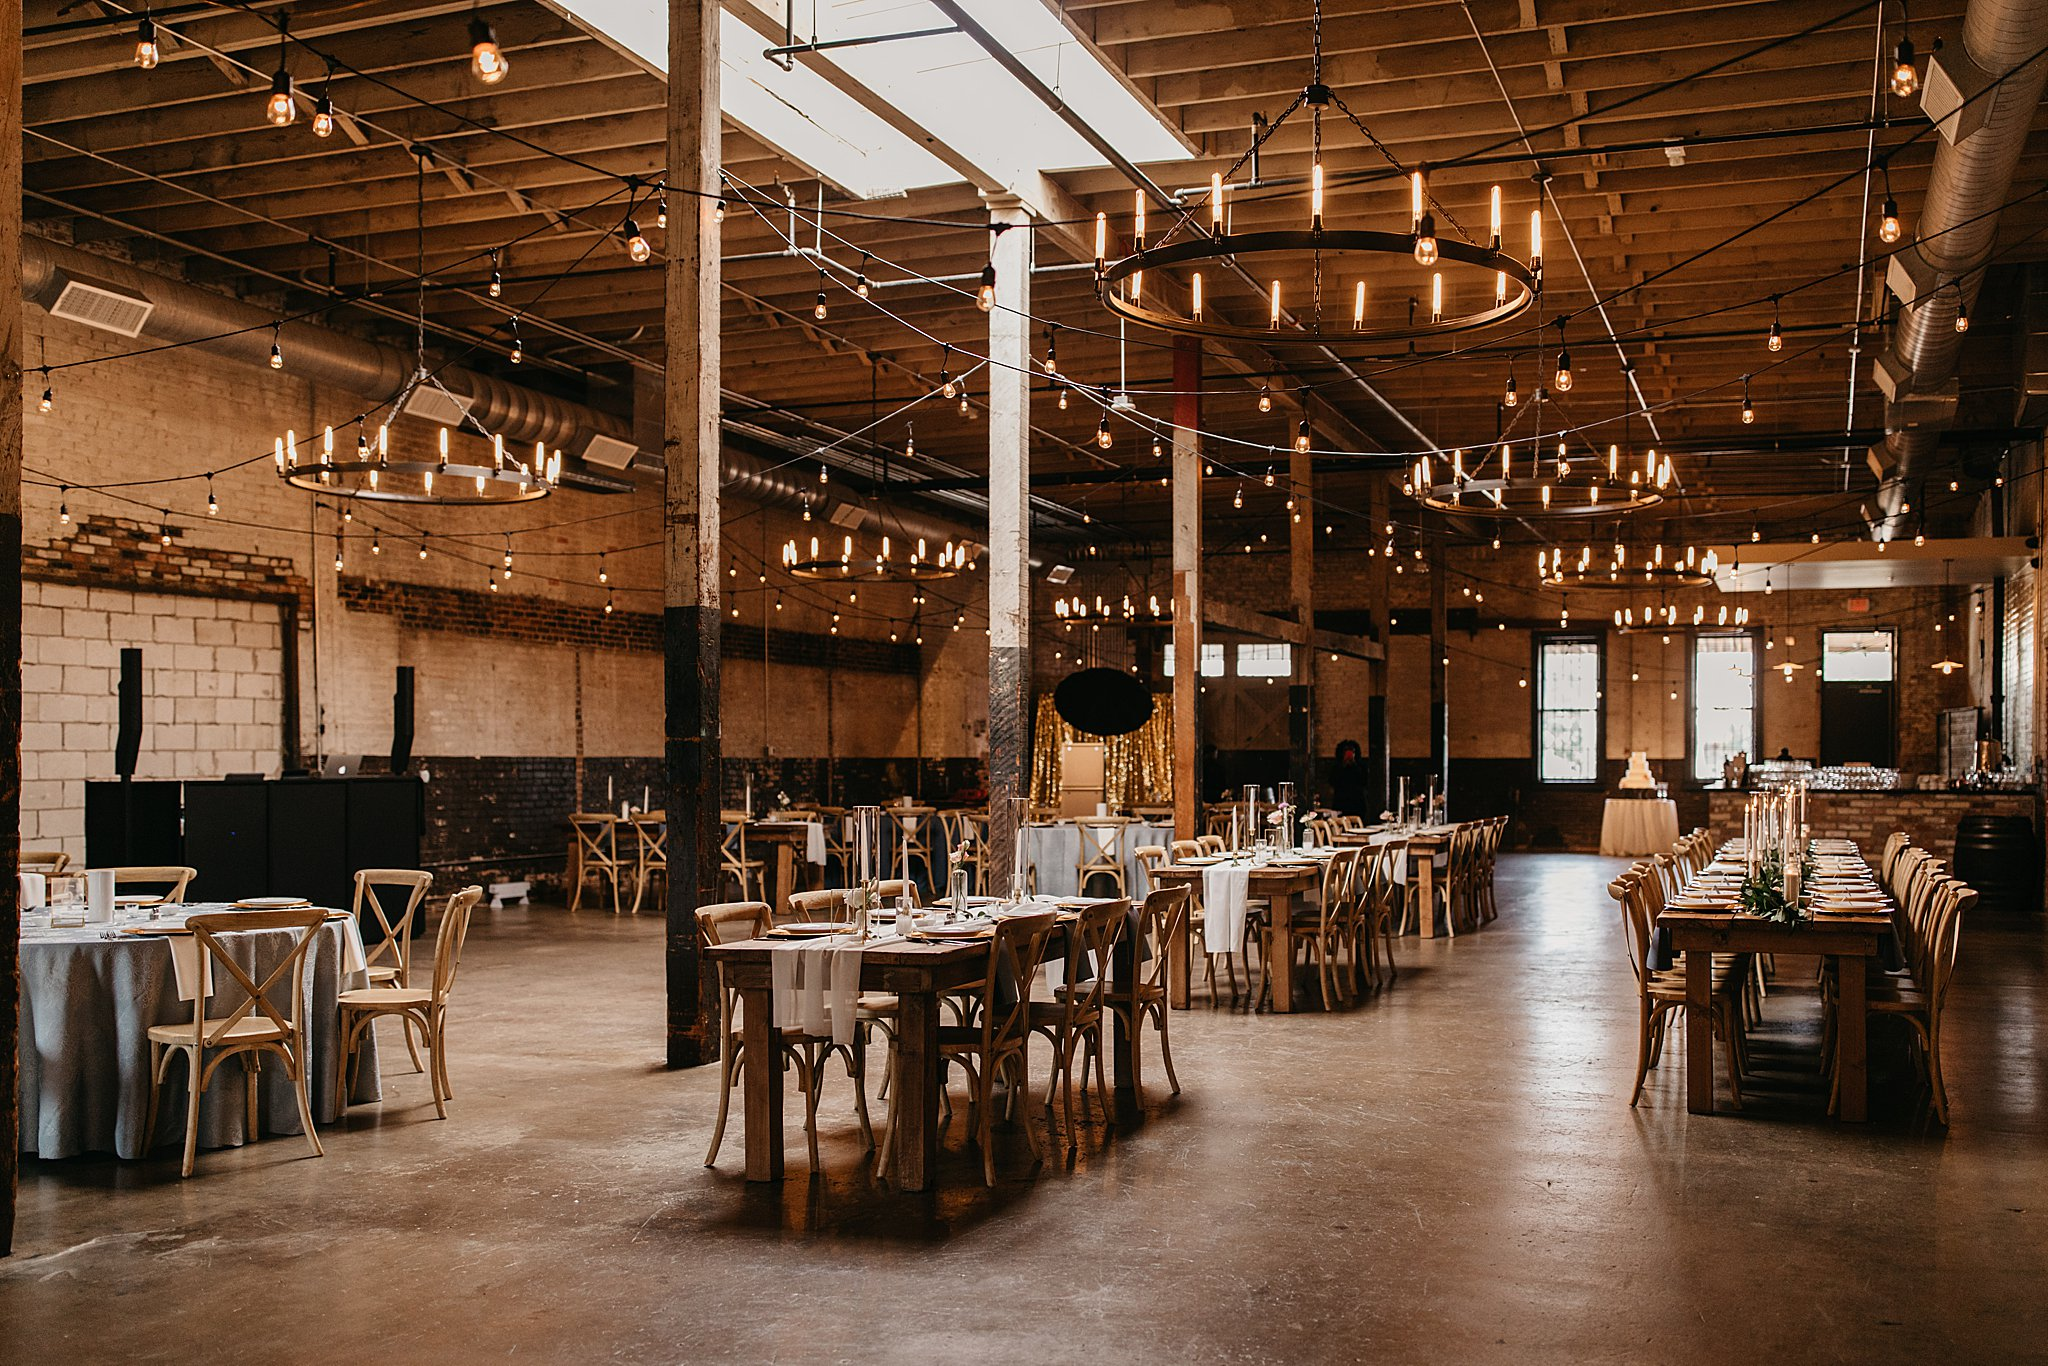 Wilderlove Co_Wedding Photographer_Industrial Wedding_Jewish Wedding_Dallas Texas Wedding_Brake & Clutch Warehouse_North Texas Photographer_0066.jpg